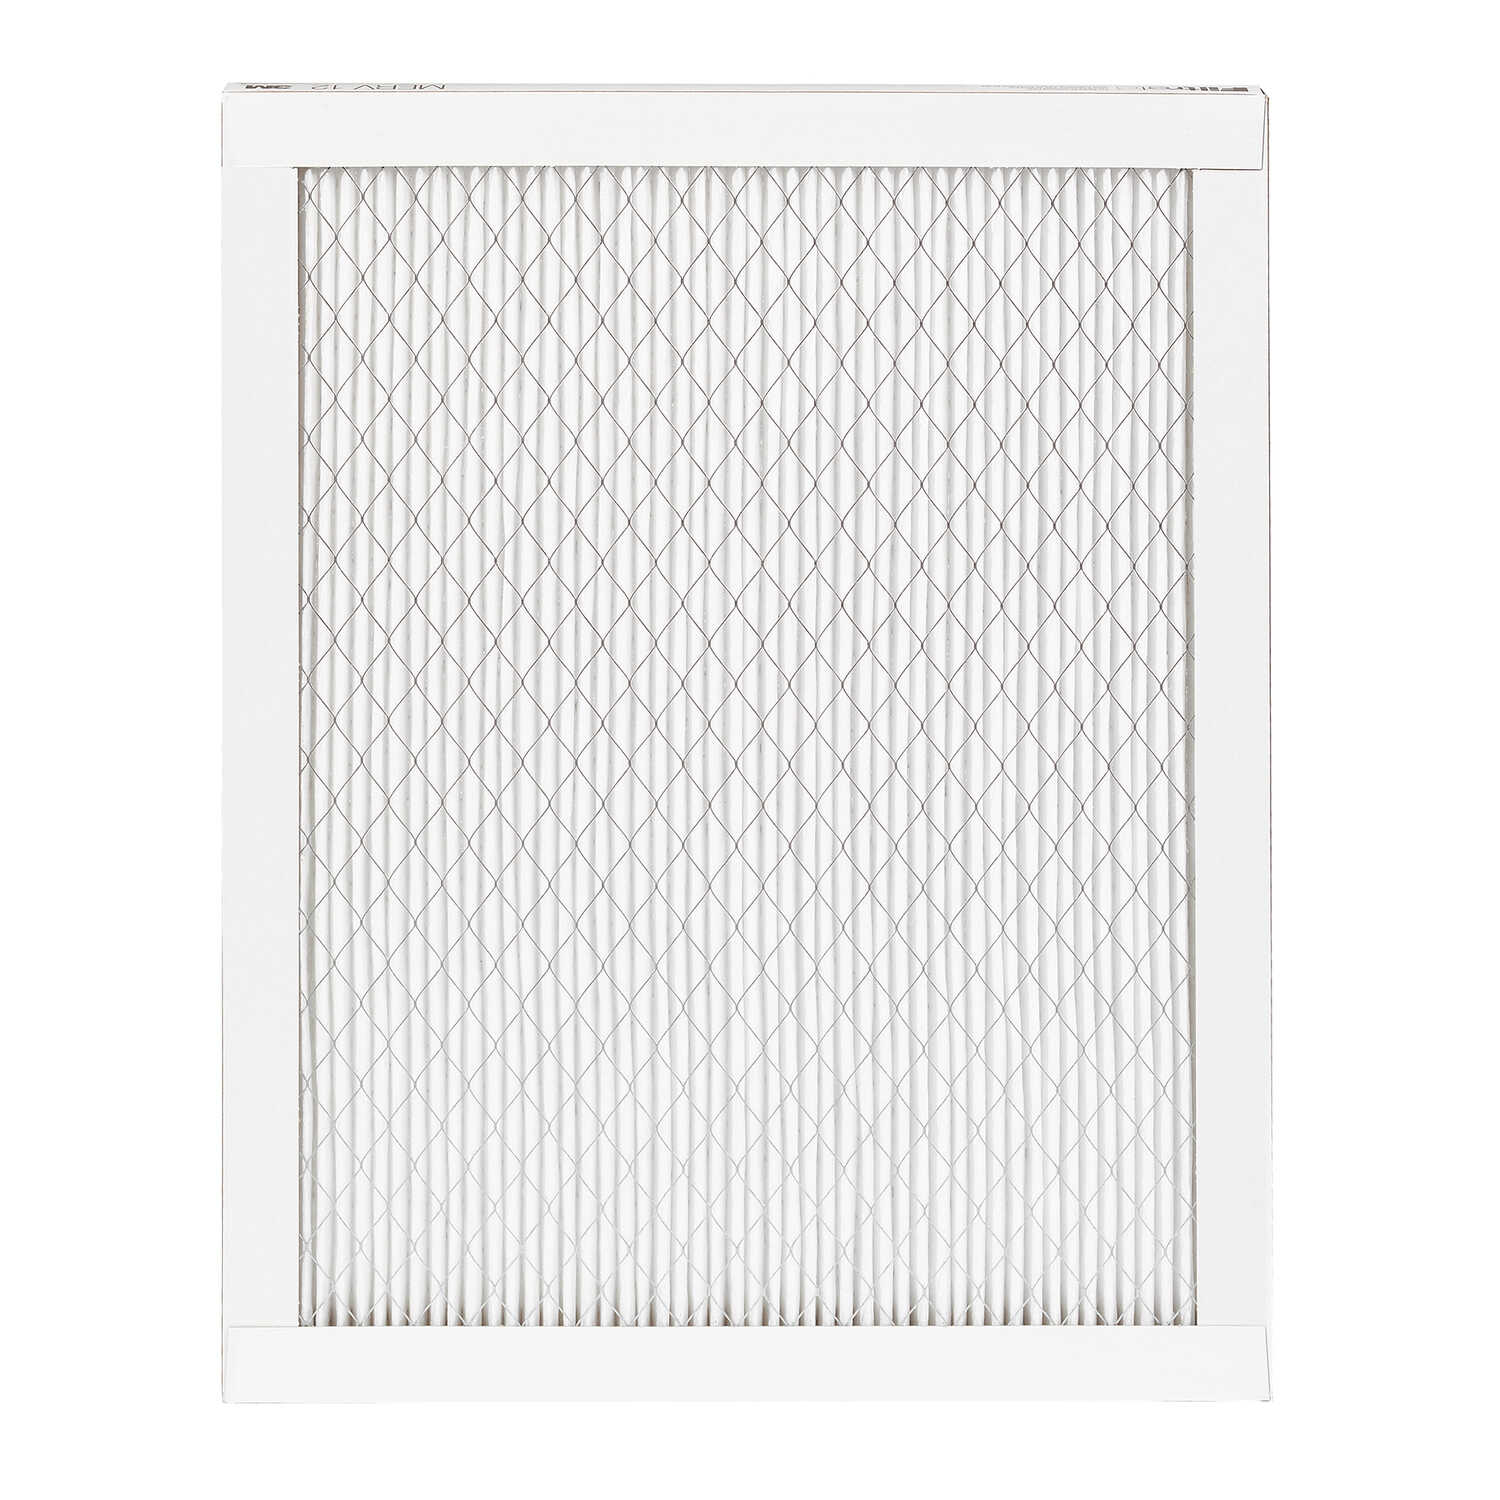 3M  Filtrete  12 in. W x 12 in. H x 1 in. D 12 MERV Pleated Air Filter